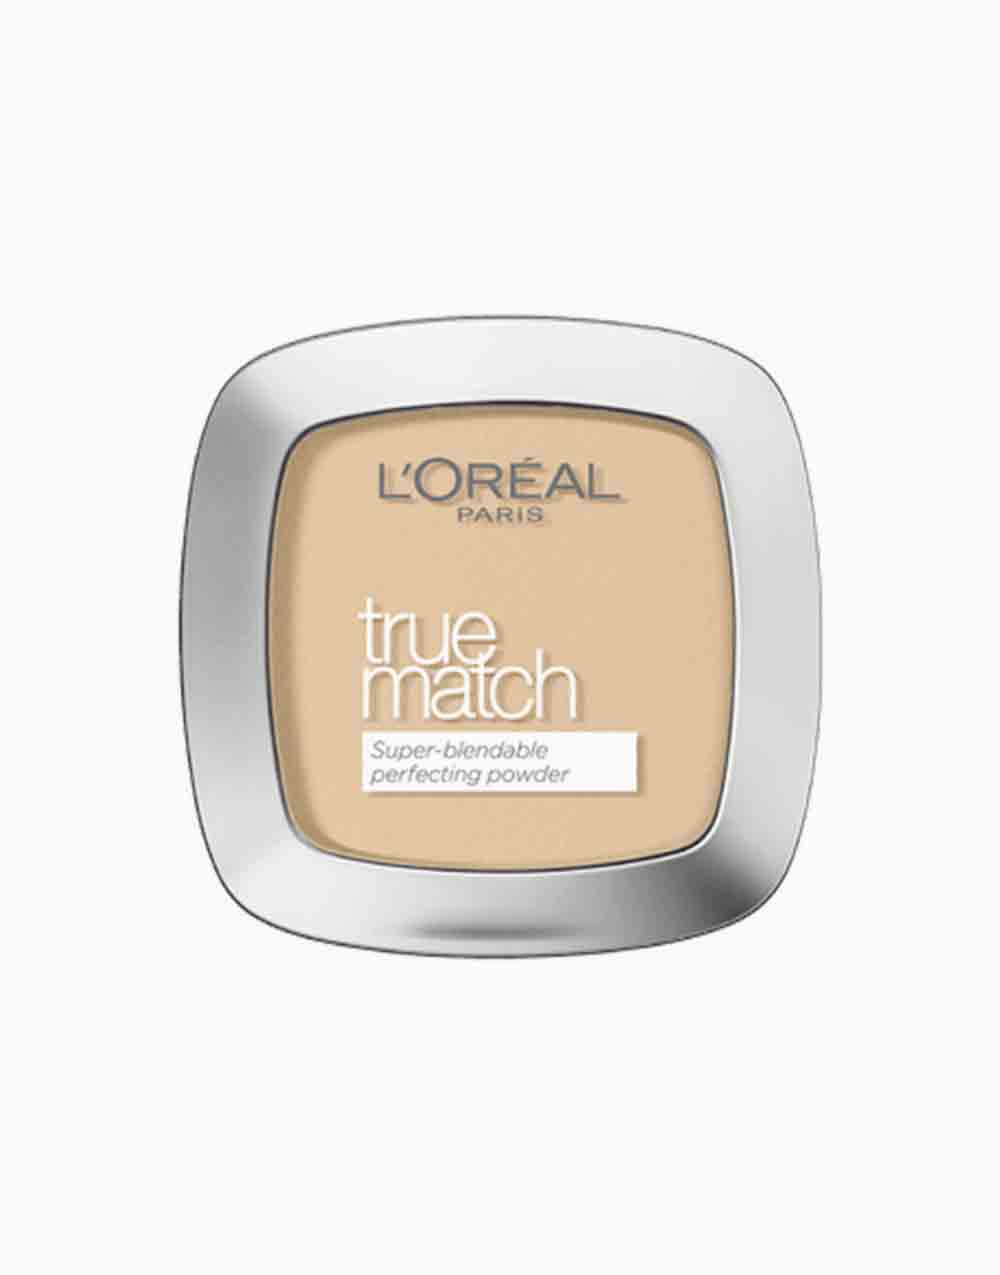 True Match Skin-Caring Skin-Matching Pressed Powder by L'Oréal Paris | 1D Golden Ivory